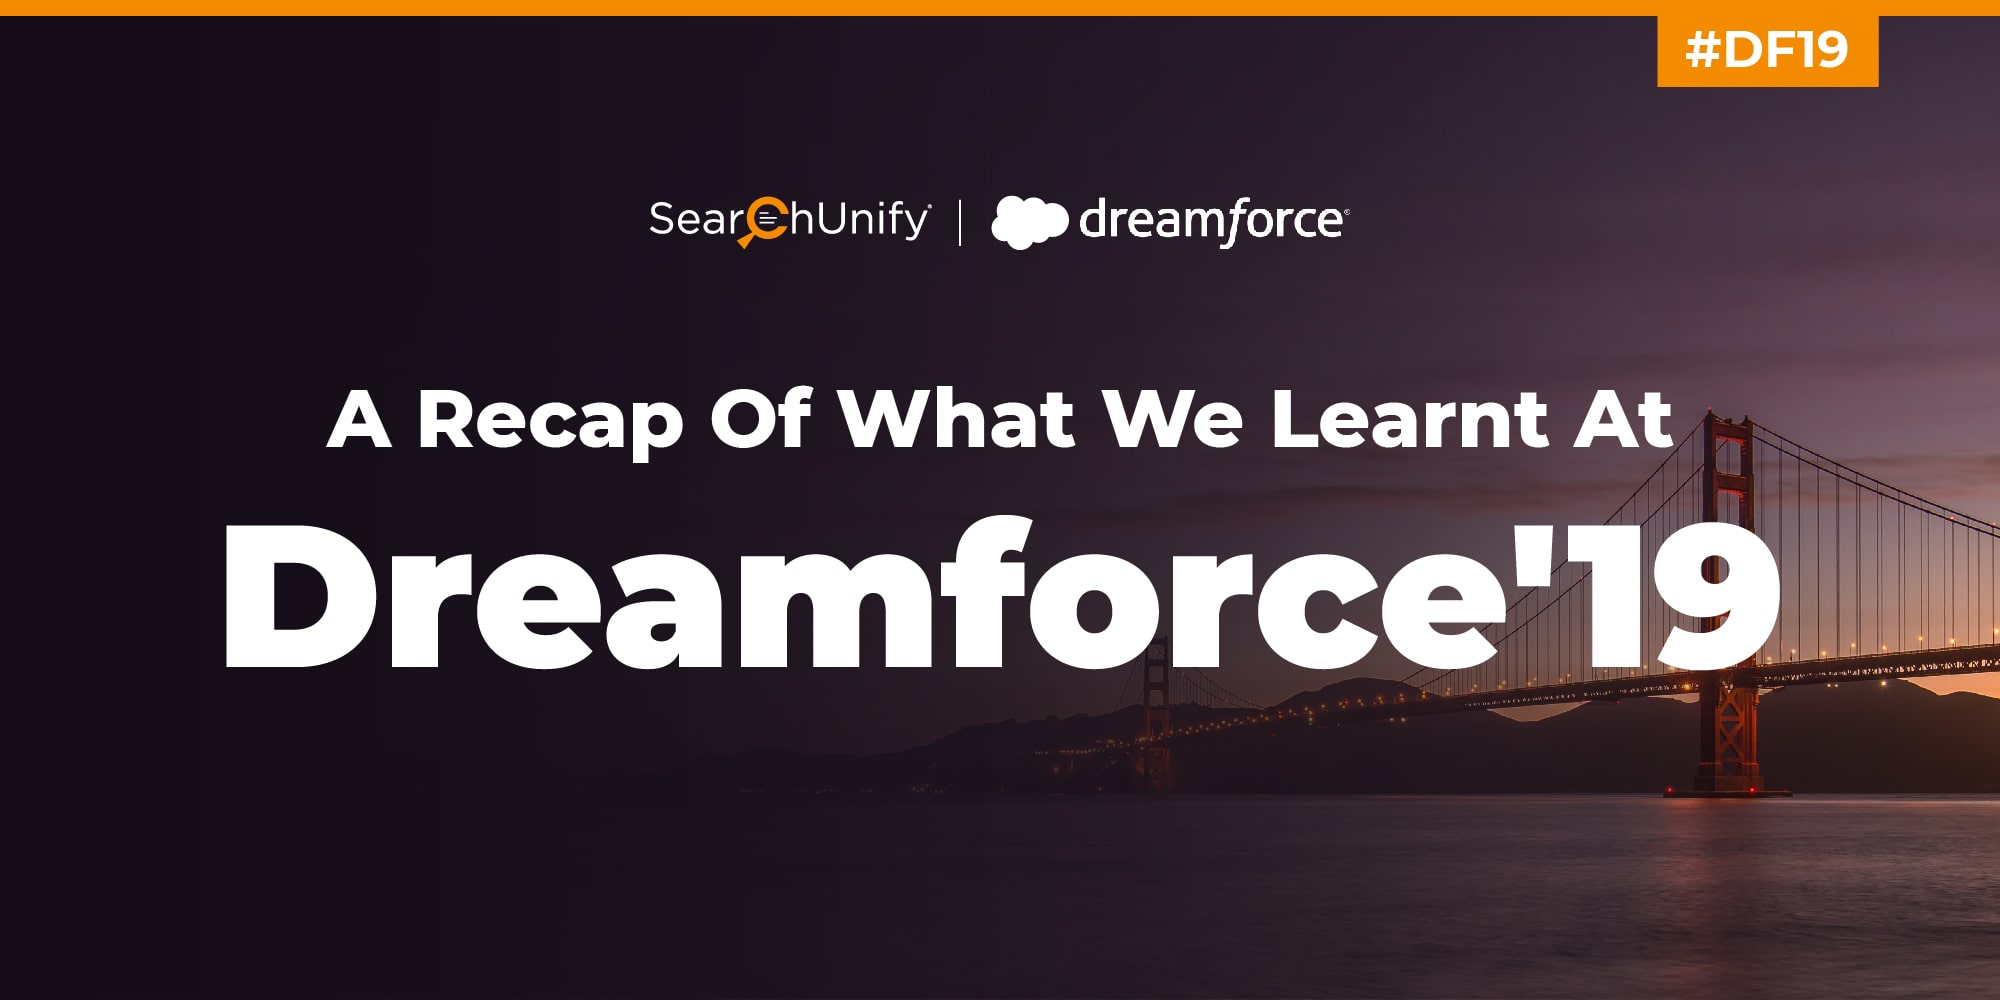 A Recap of What We Learnt at Dreamforce 19